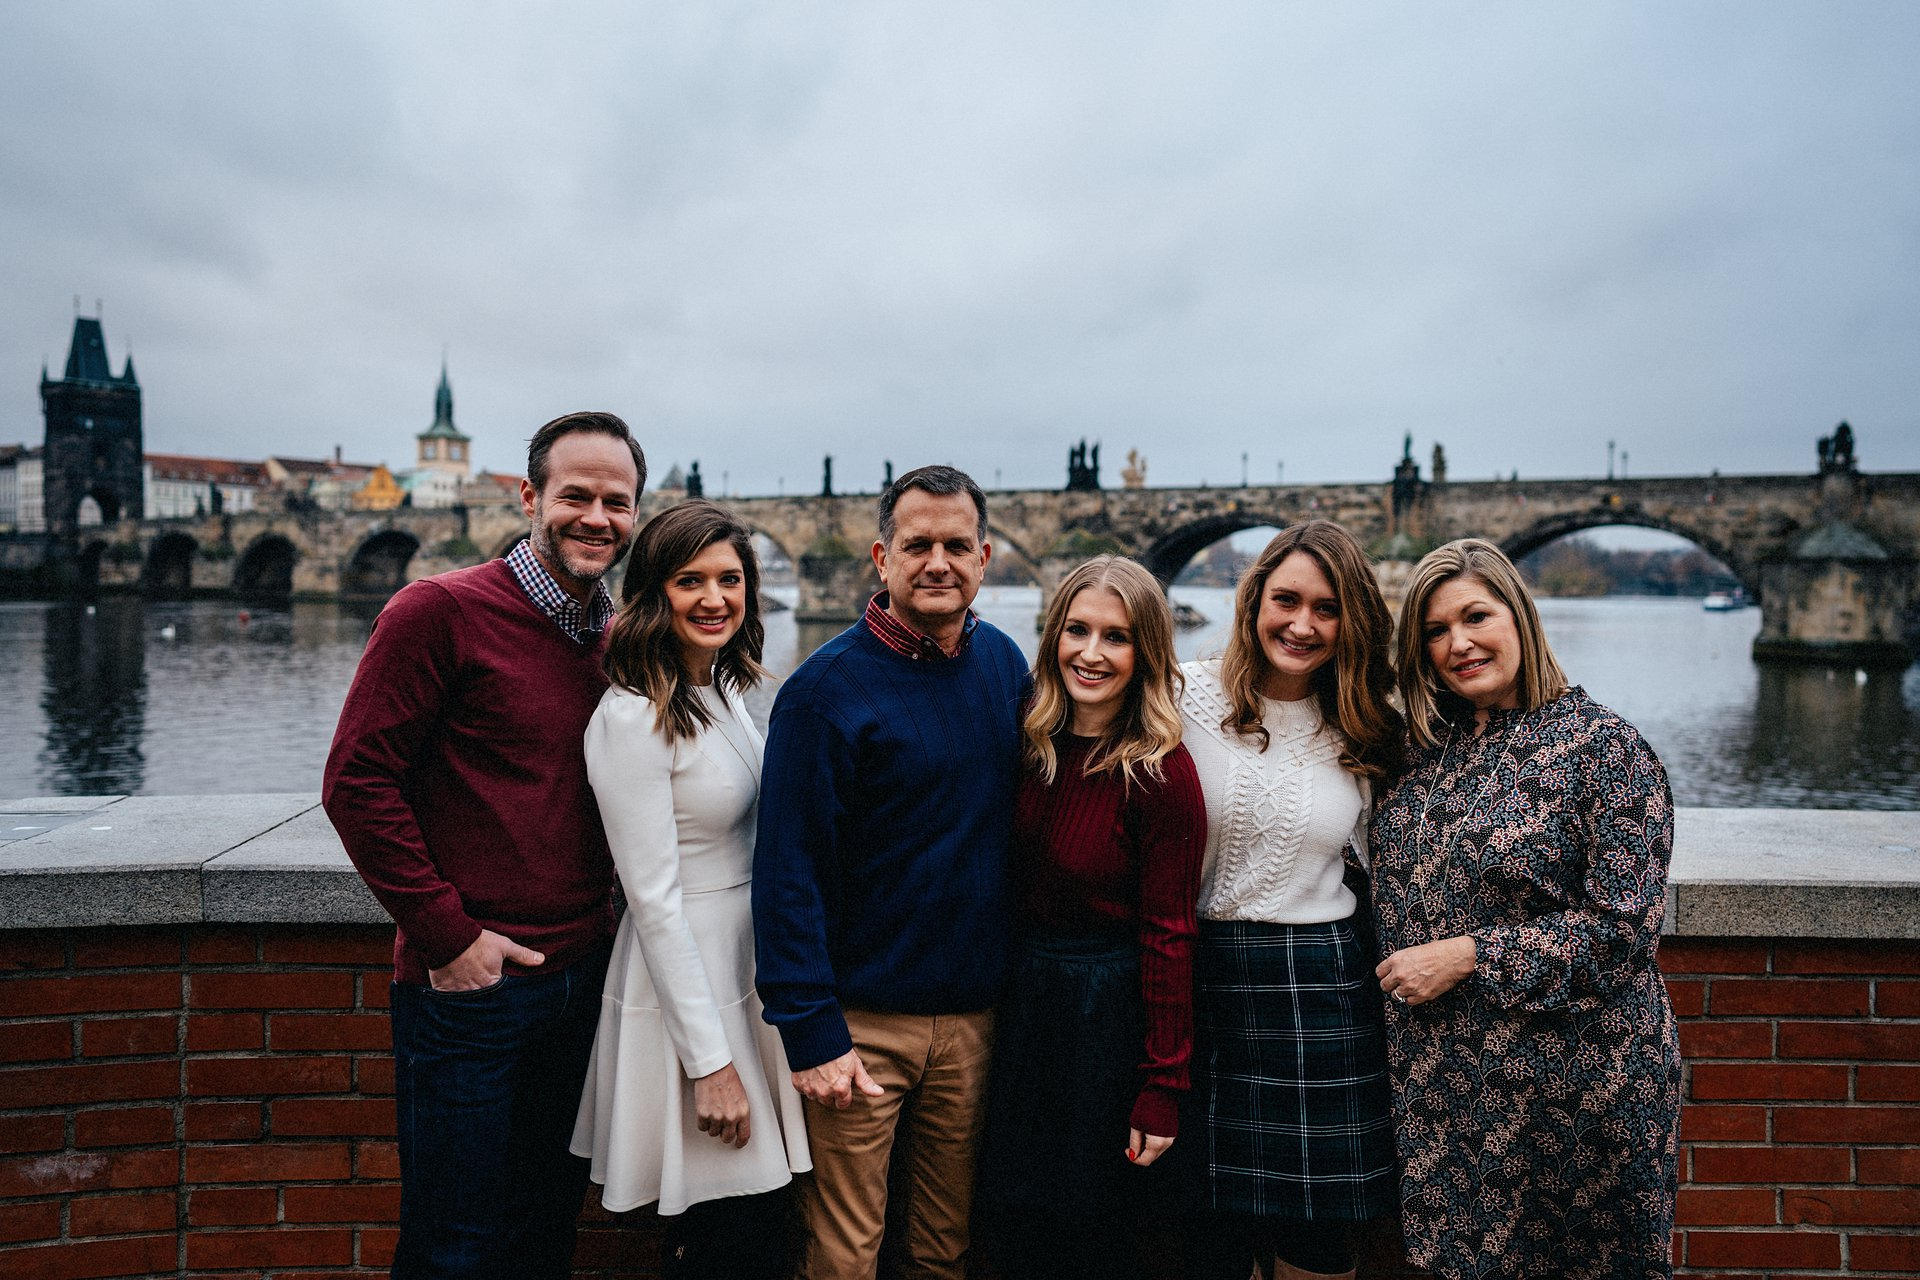 Flytographer Travel Story - Prague Family Trip